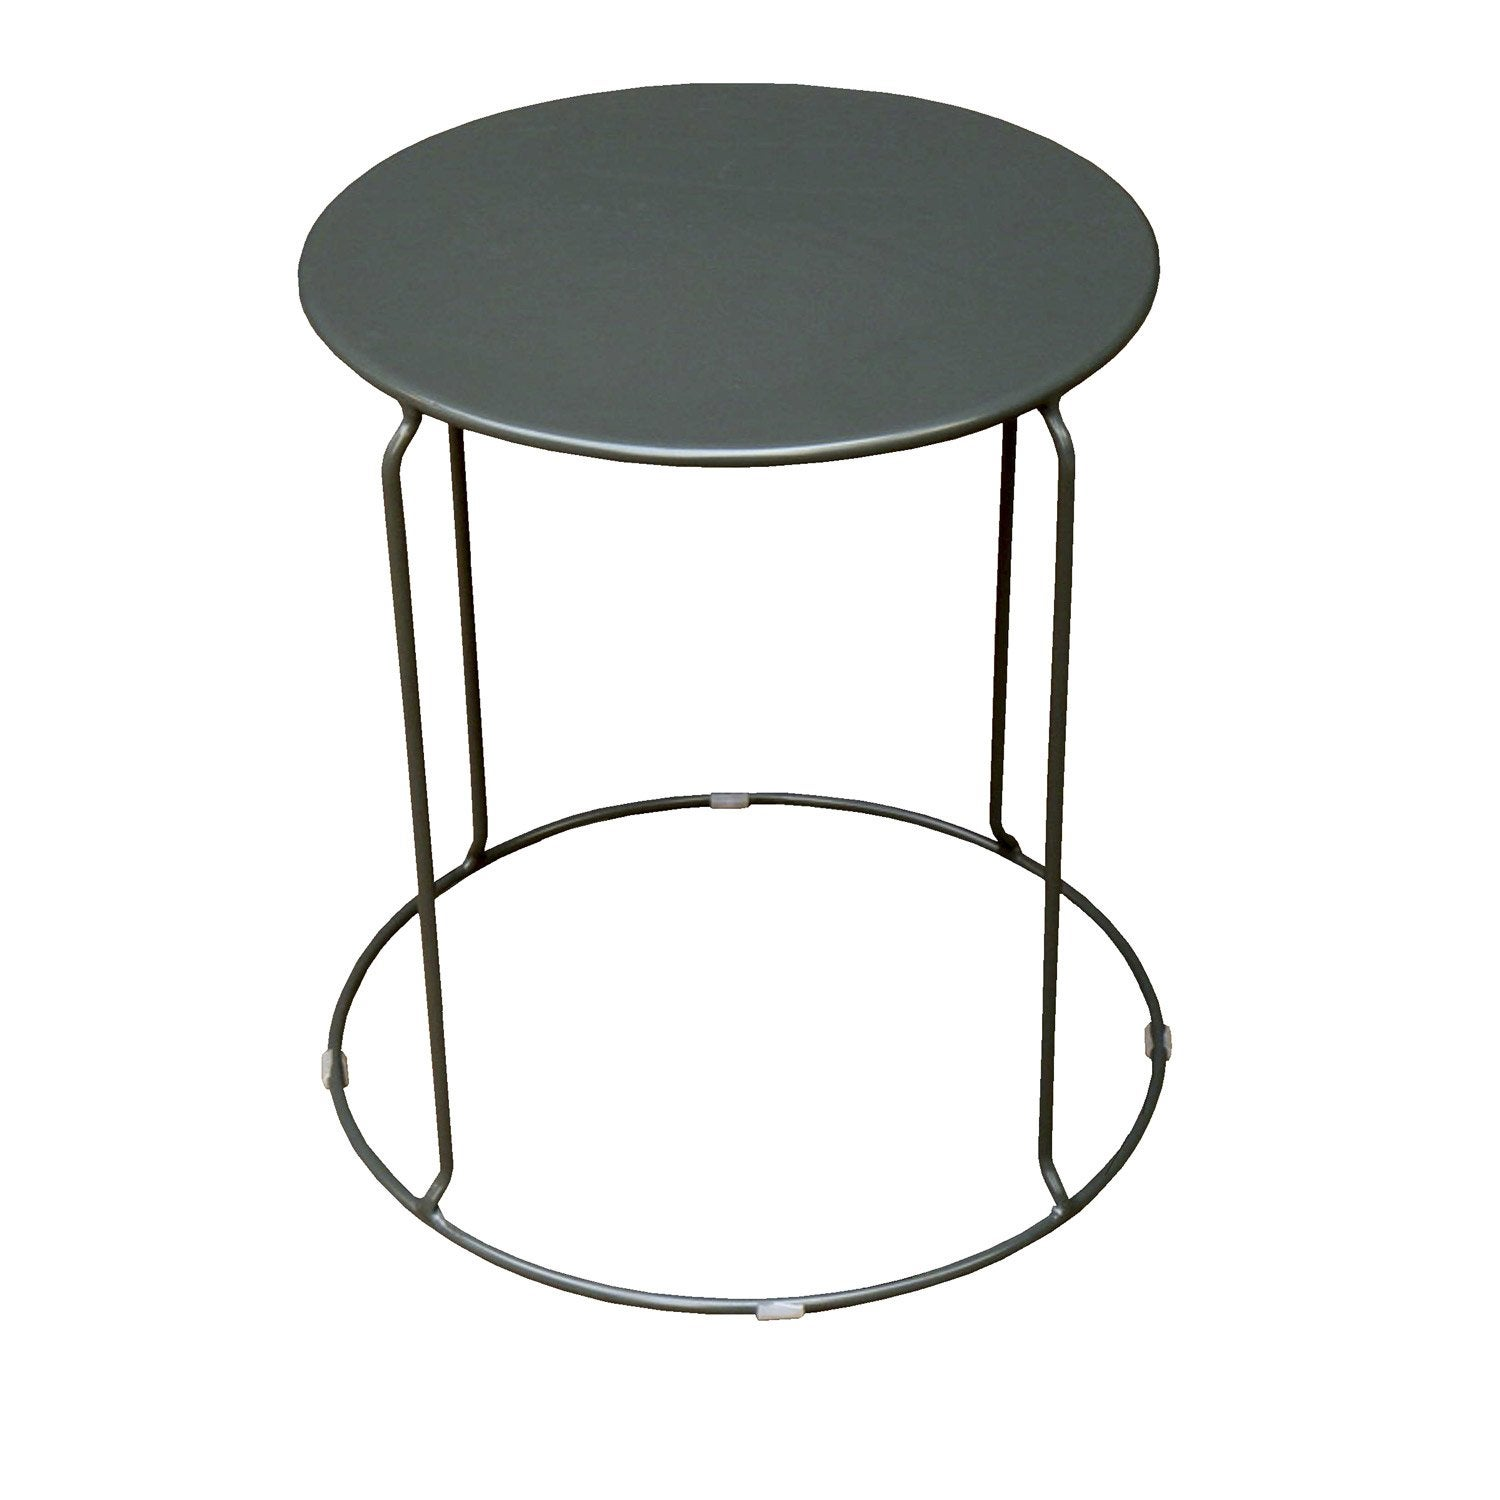 Table basse bois leroy merlin - Table basse qui se releve ...